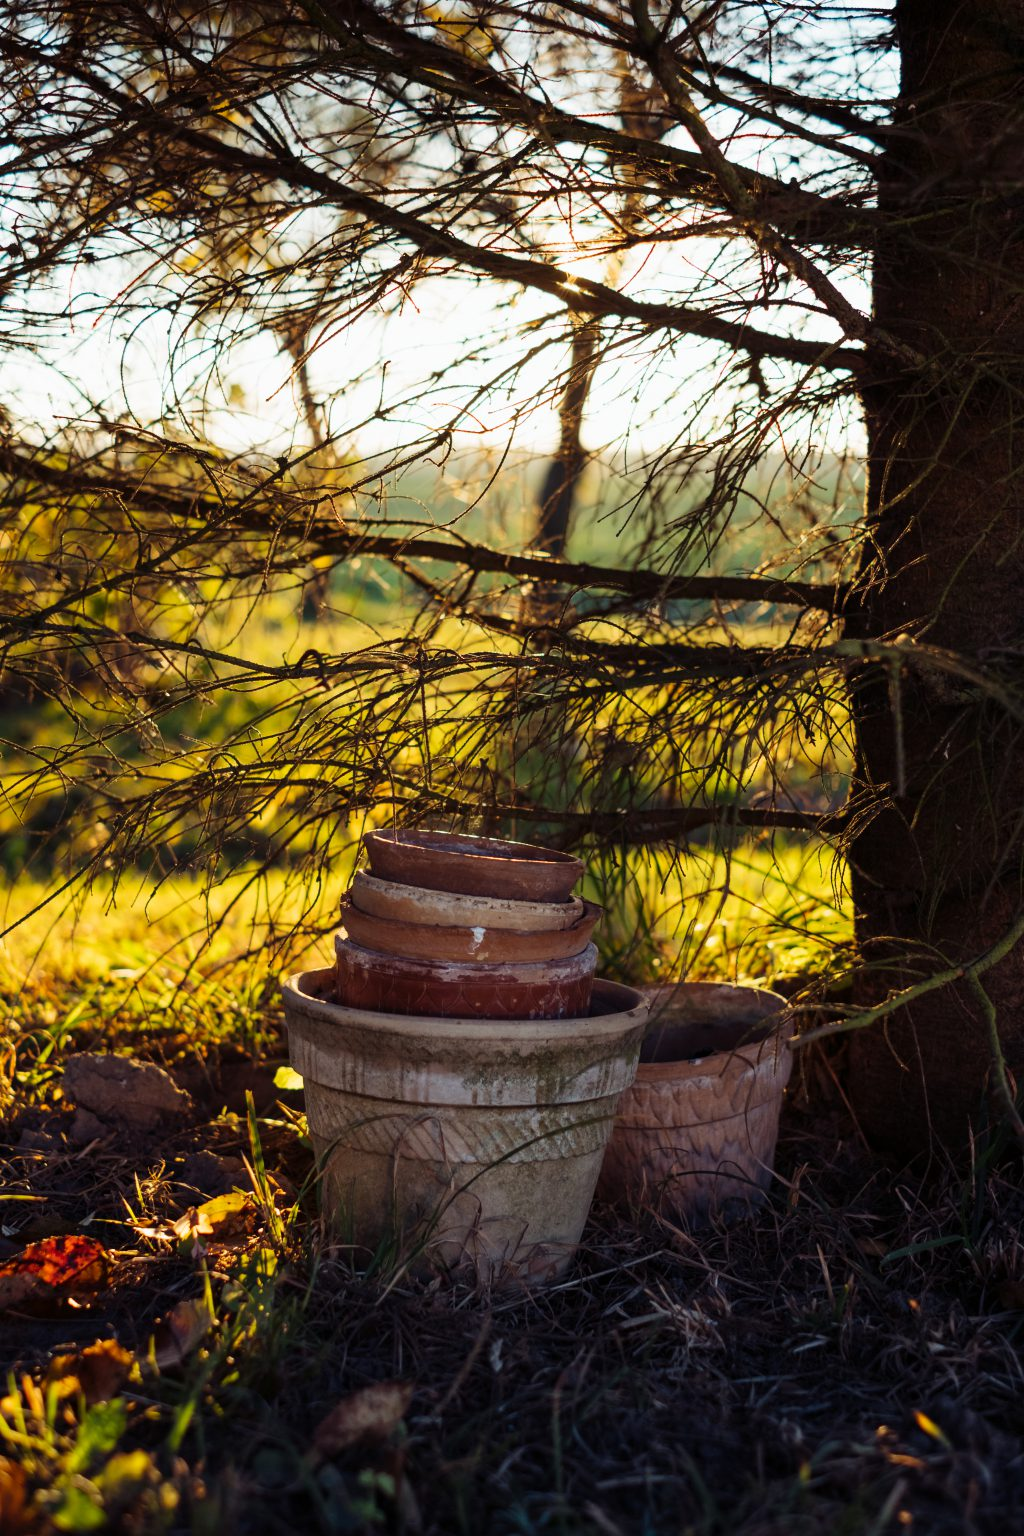 Old clay flower pots under a spruce - free stock photo